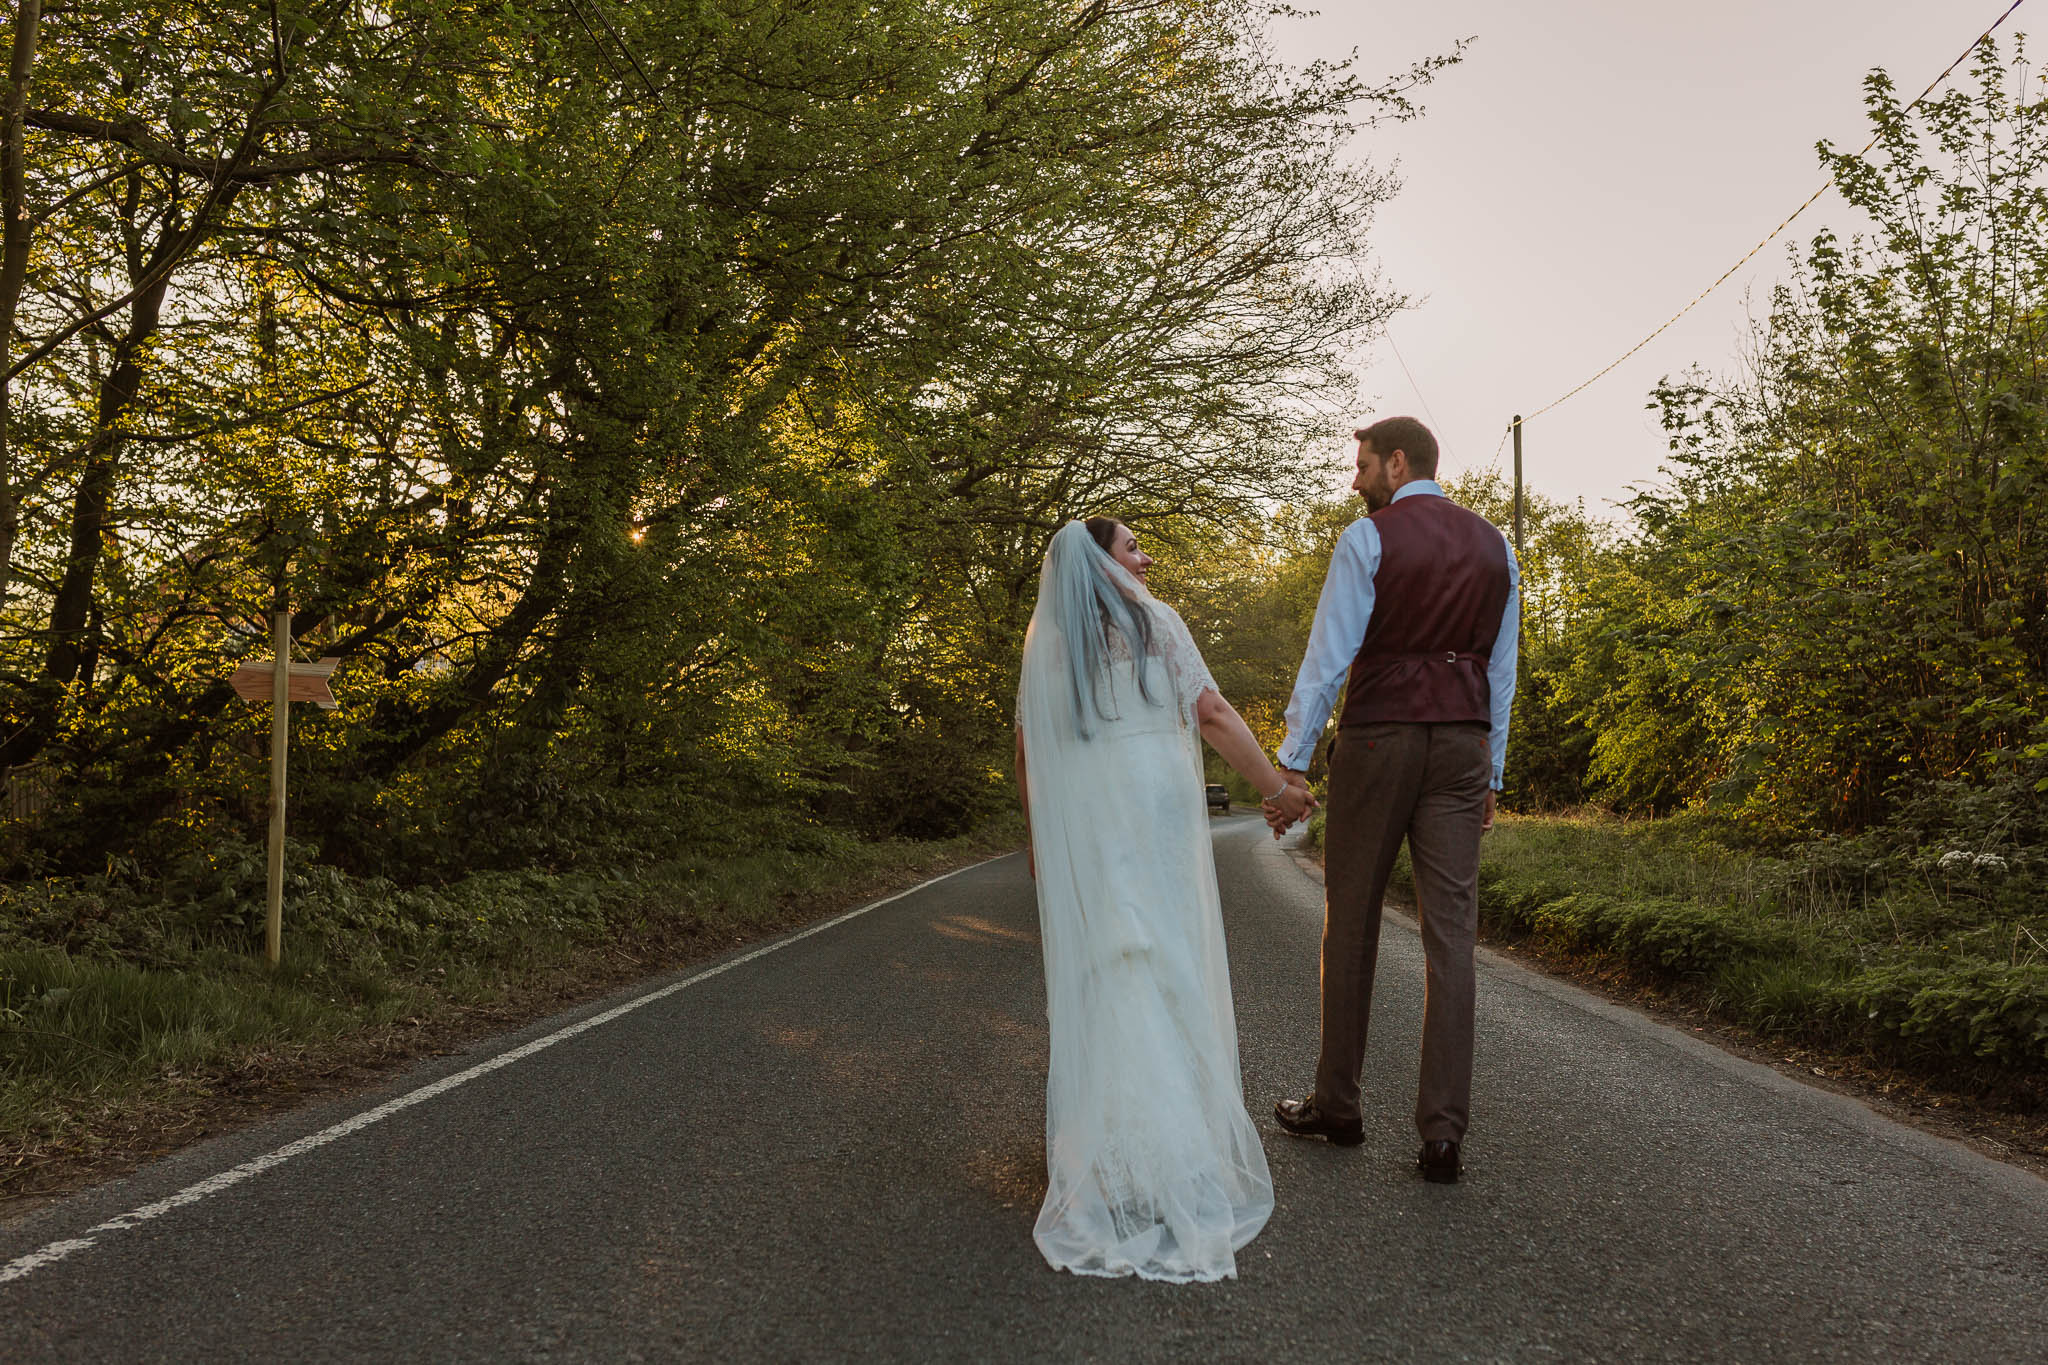 bride and groom walking down road at sunset